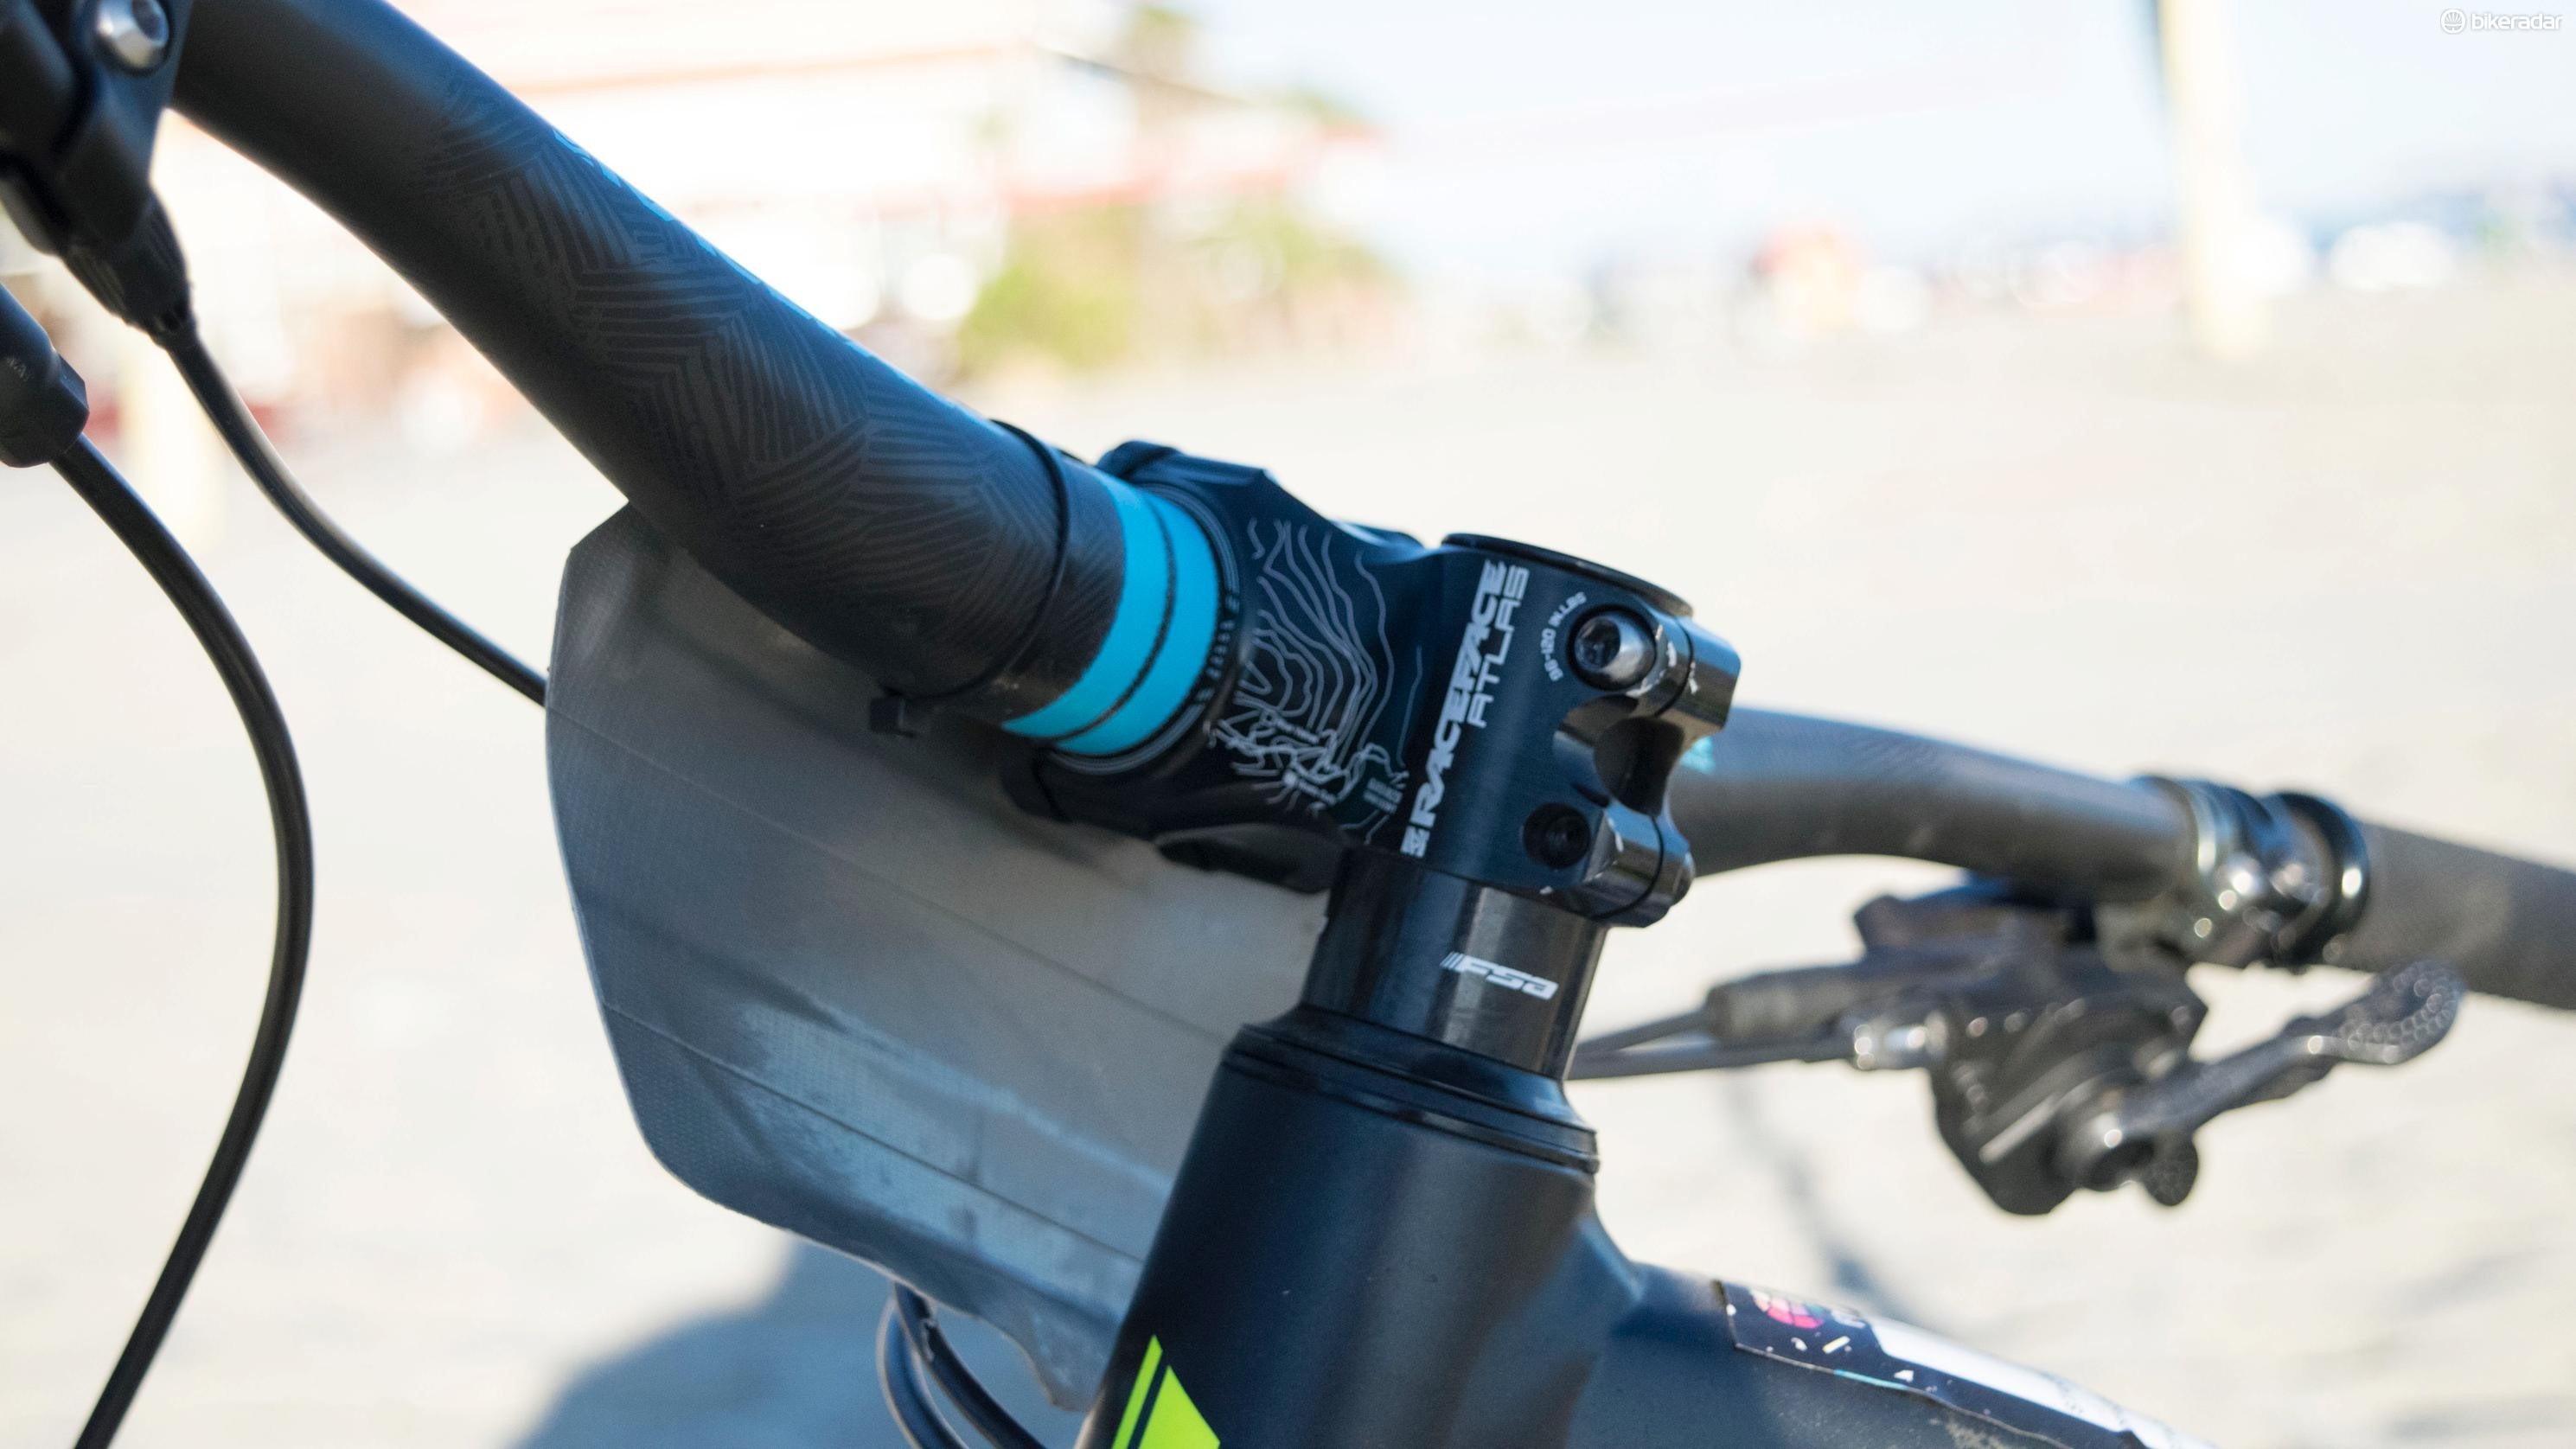 A 50mm stem and 780mm bar sit above 20mm of spacers